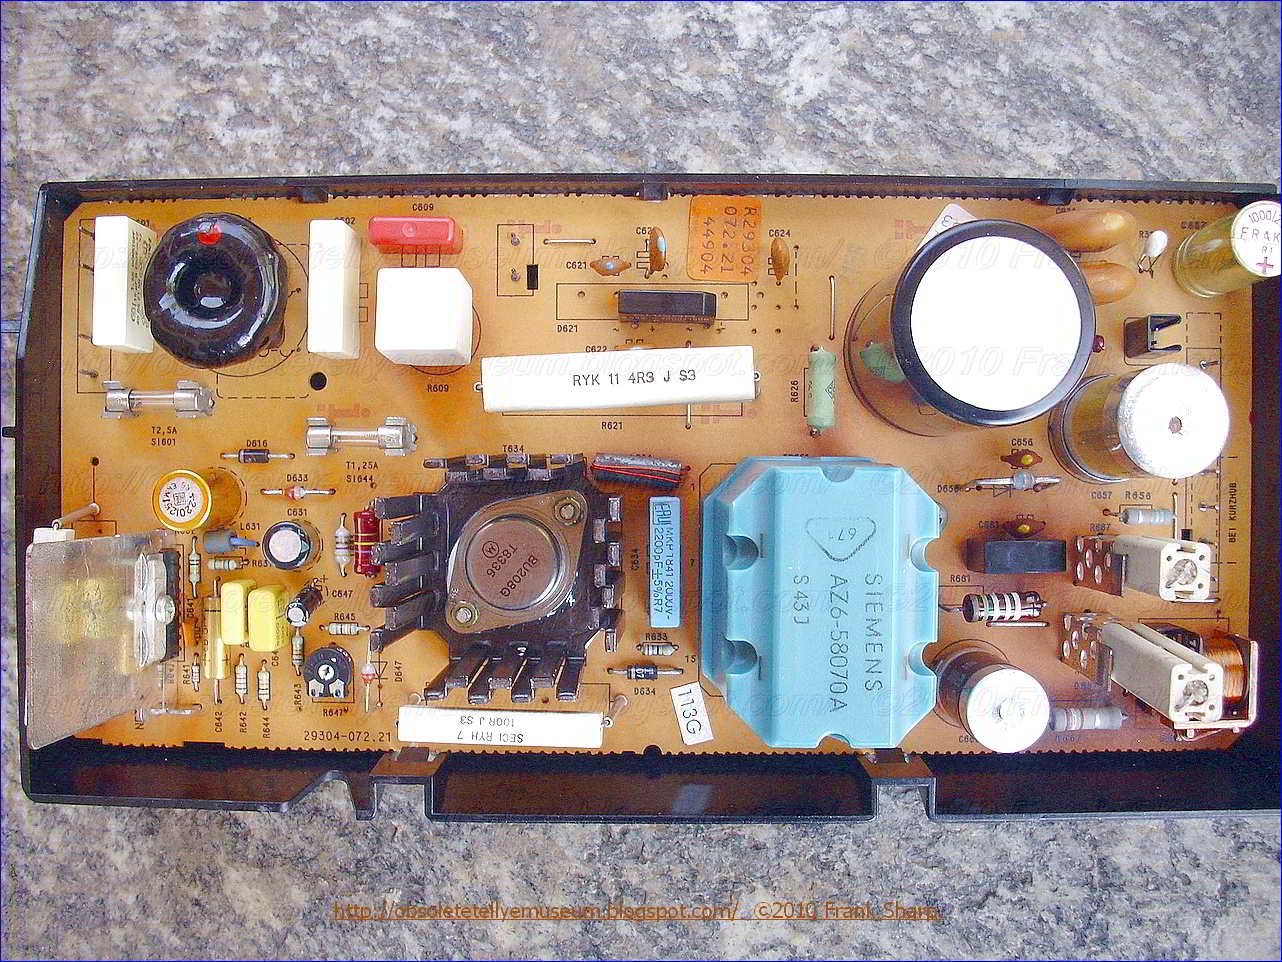 Obsolete Technology Tellye Grundig Super Color C7443 Serie F 3022 Capacitor How Does This Mosquito Zapper Circuit Work Electrical 2 The Protective Input 5 Of Control Rs Is Supplied Via A Voltage Divider R8 R7 Directly From Output 3 4 Rectifier G Delivering